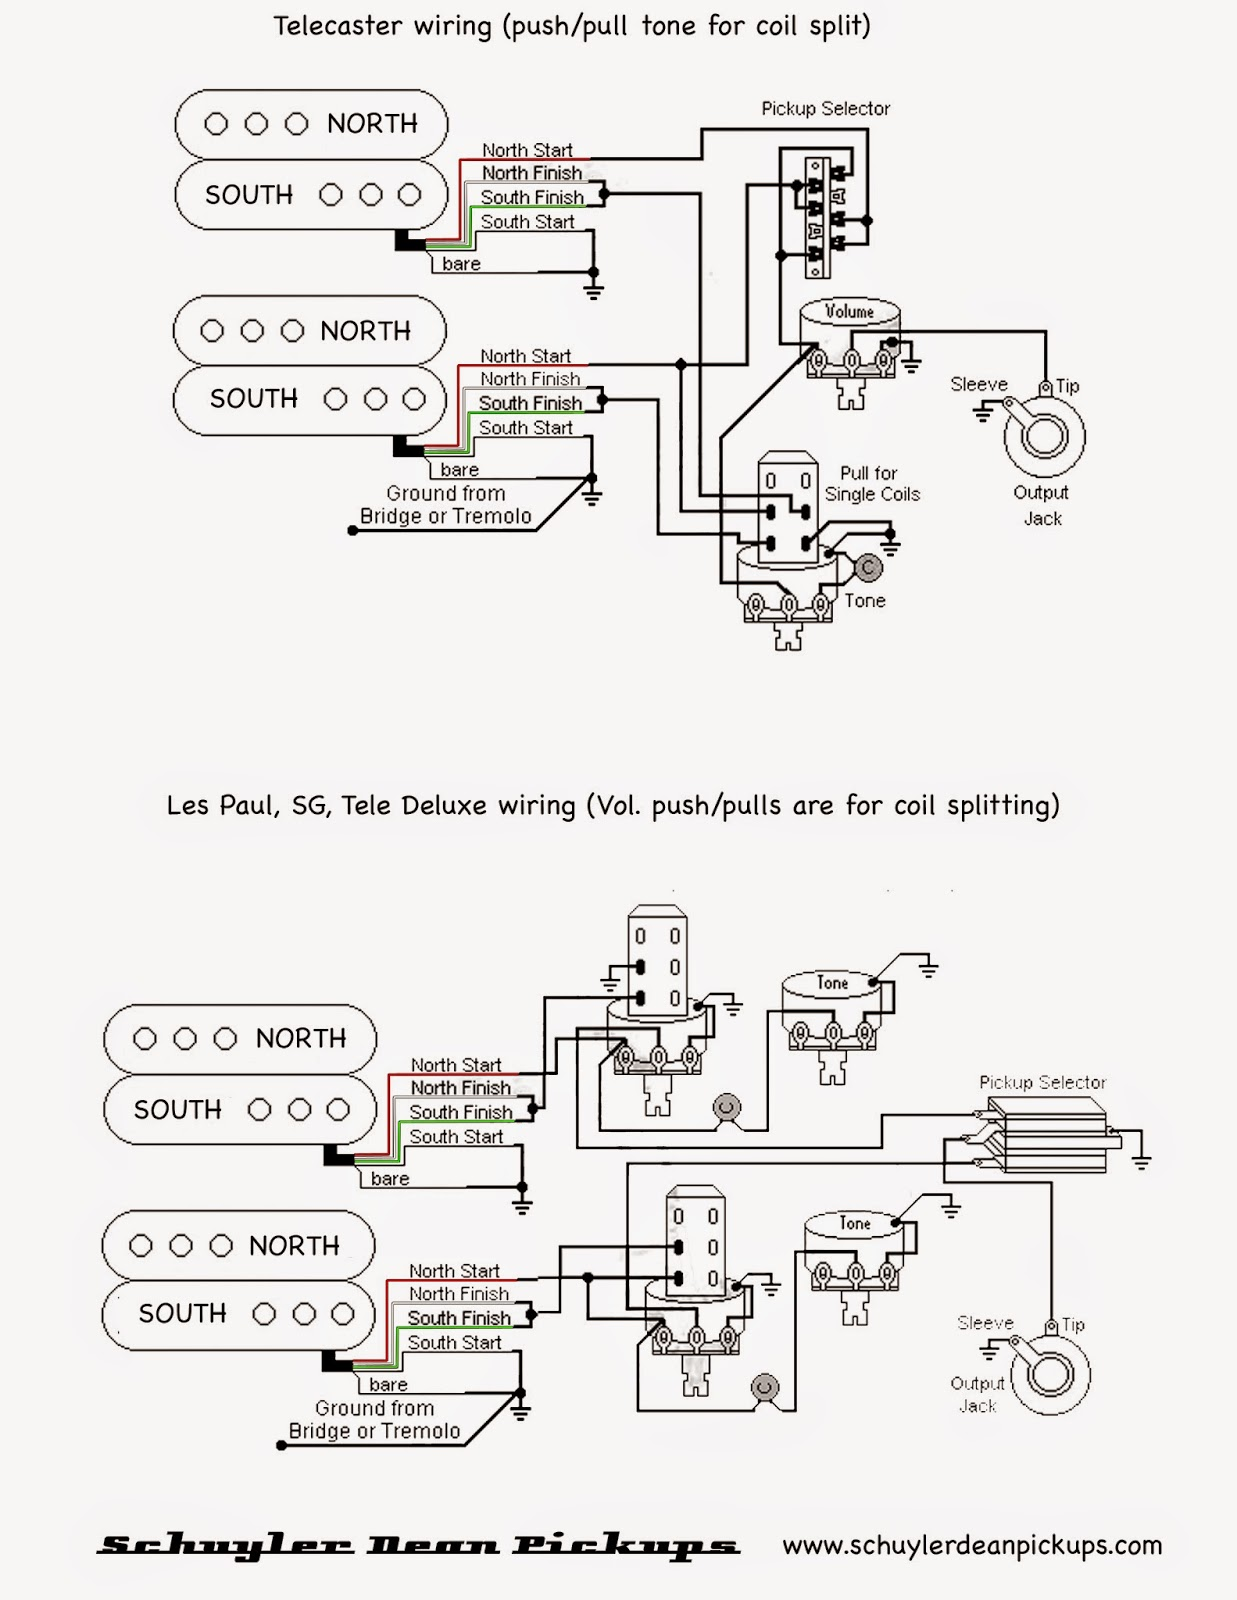 Gfs Mean 90 Wiring Diagram